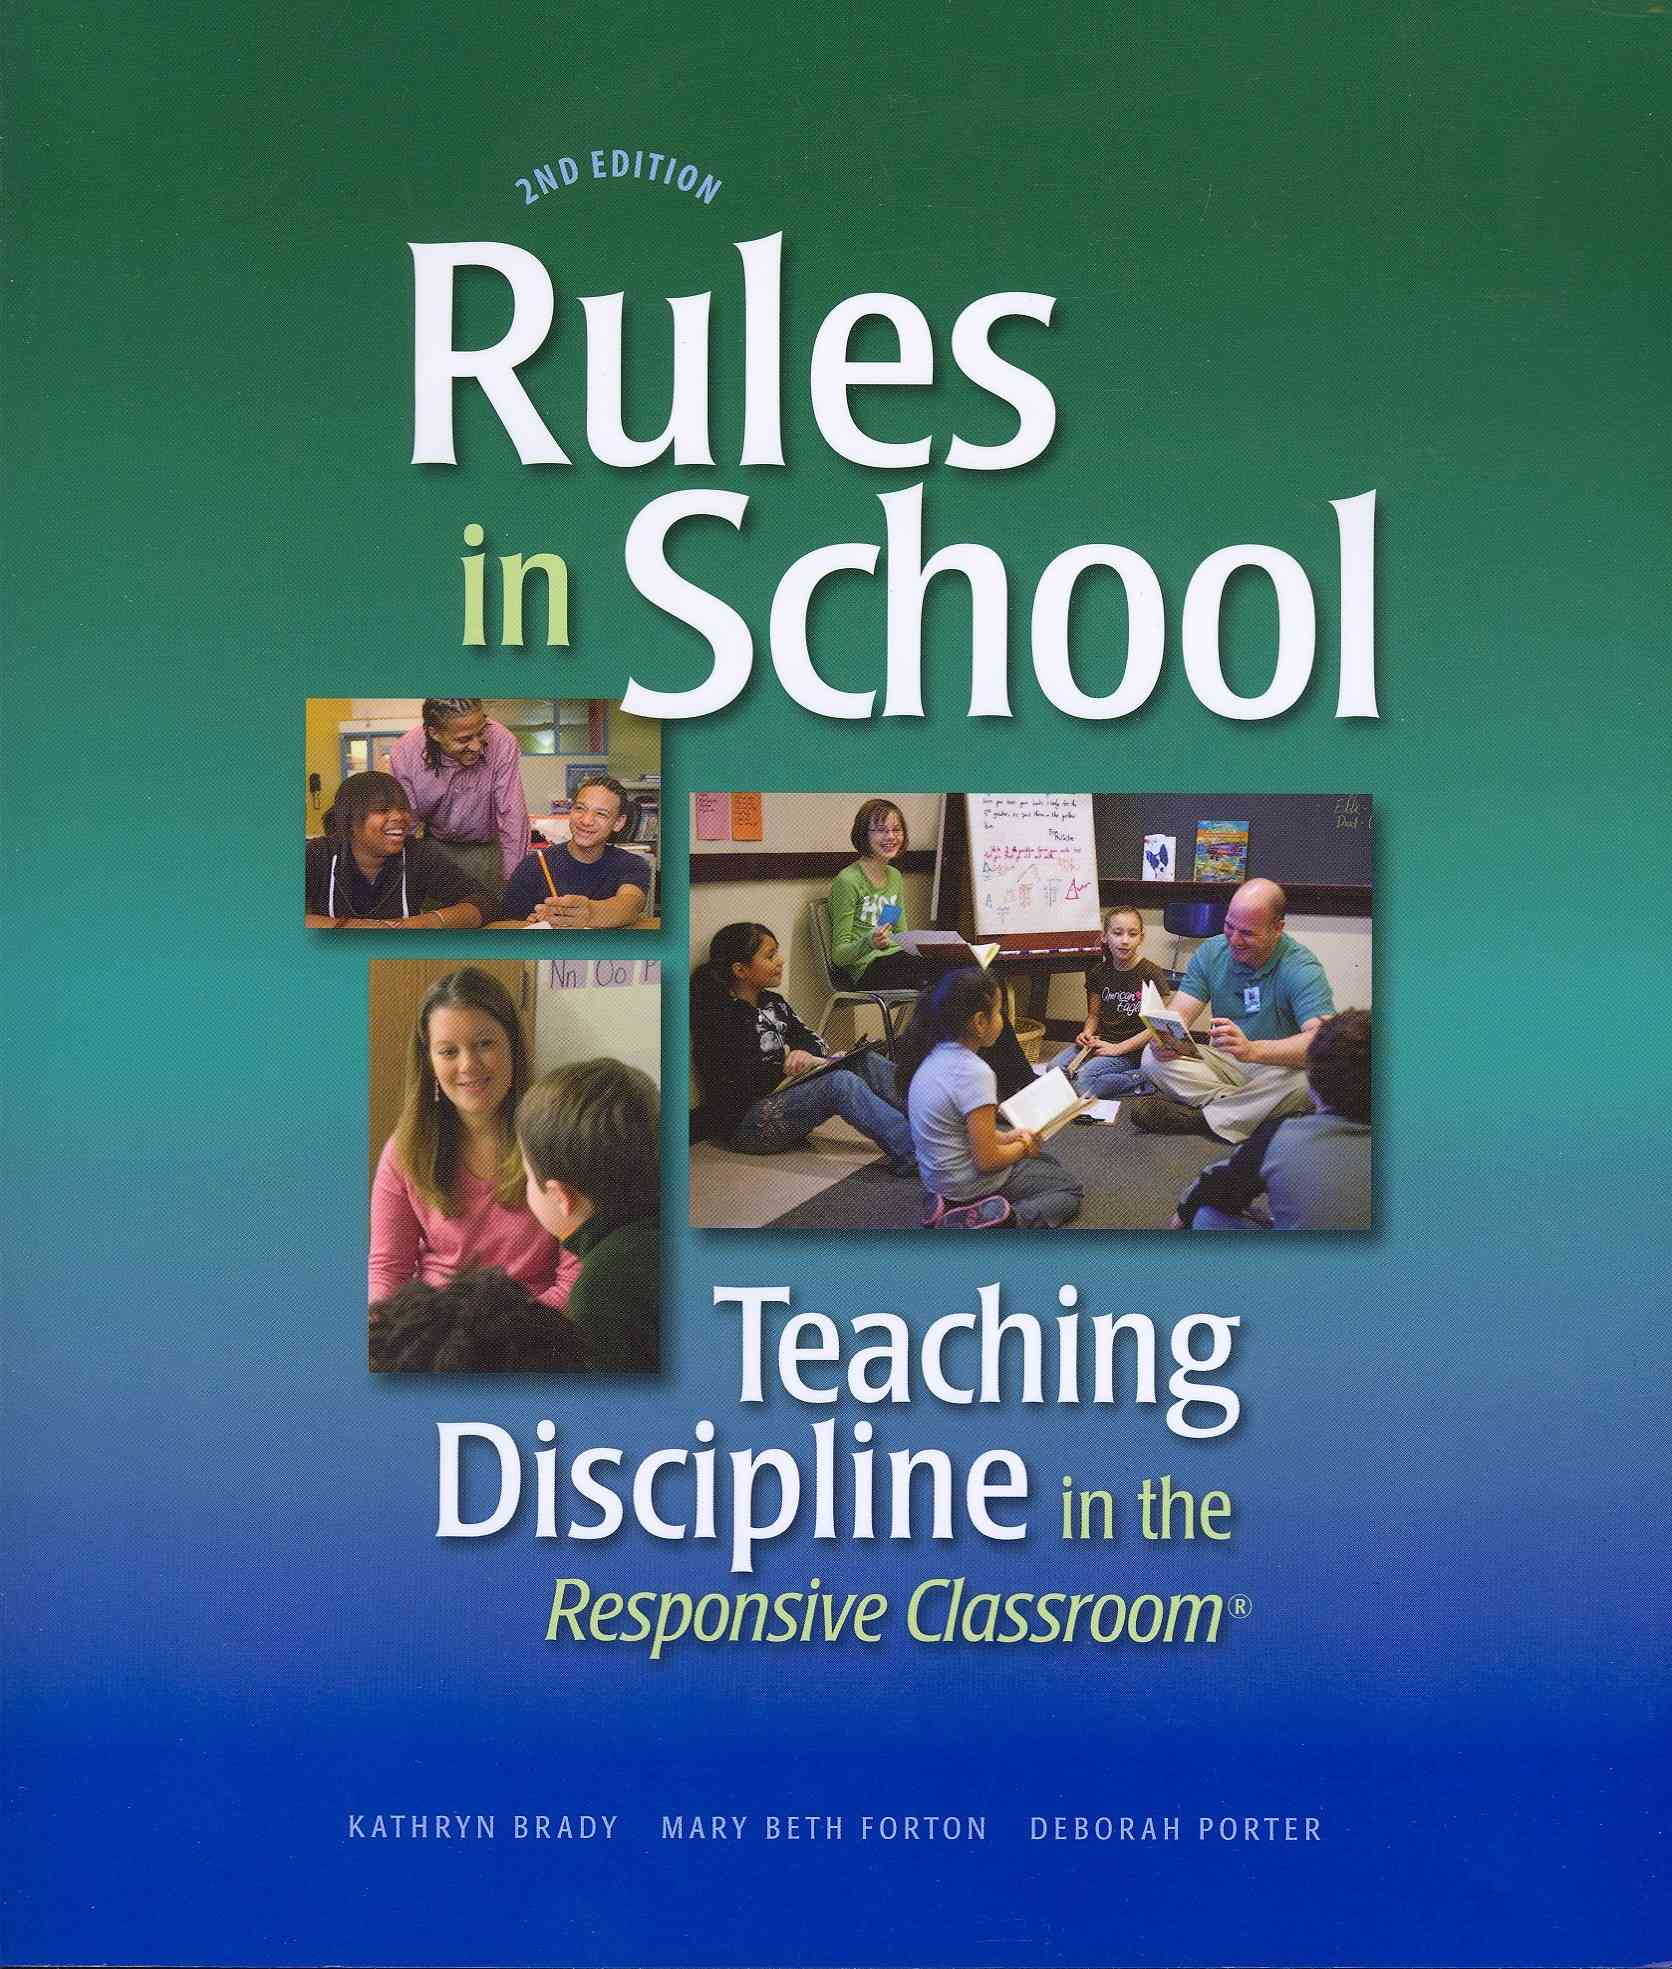 Rules in School By Brady, Kathryn/ Forton, Mary Beth/ Porter, Deborah